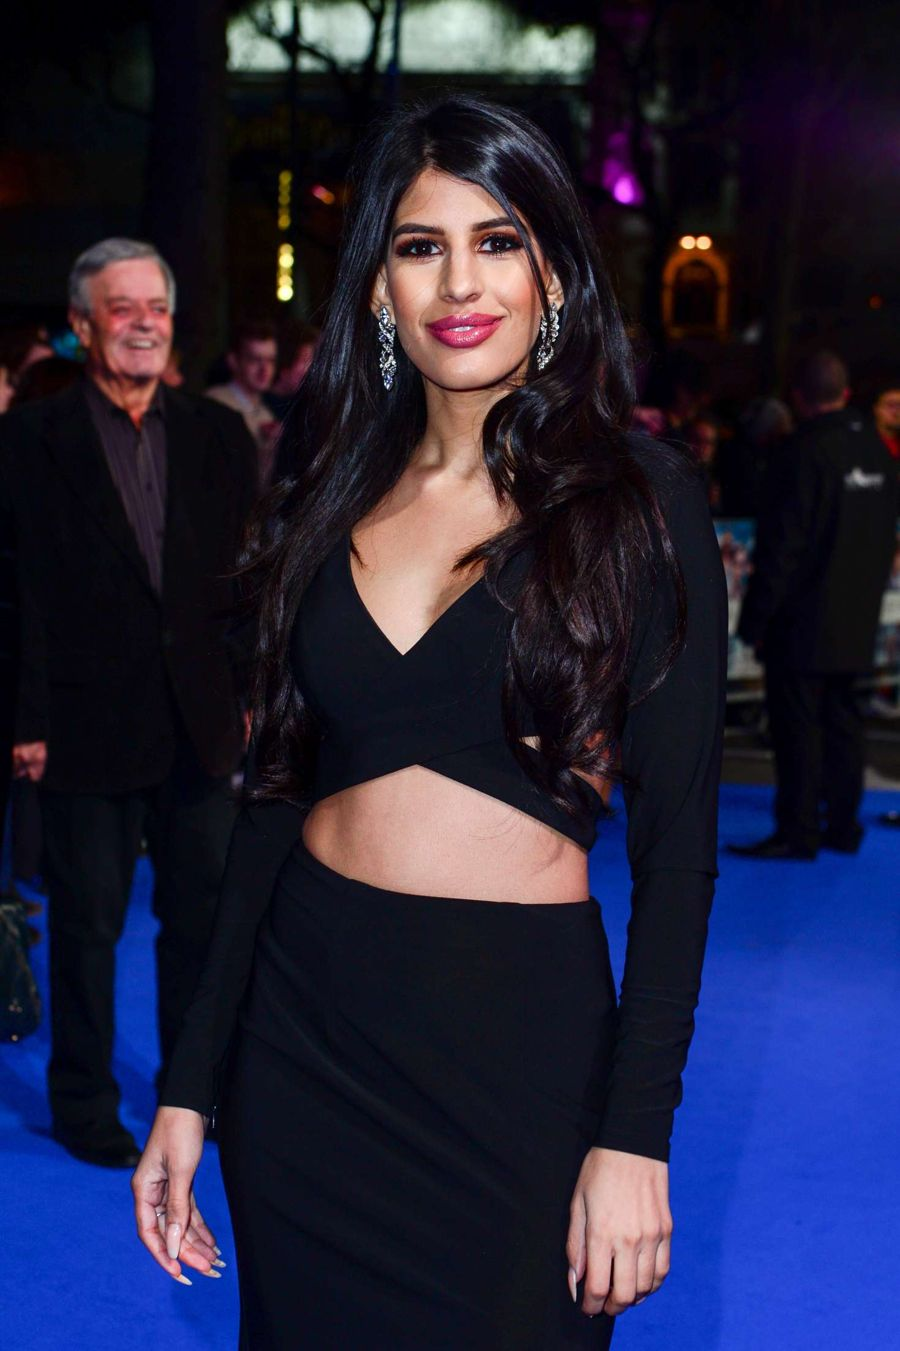 Jasmin Walia - 'Another Mother's Son' Premiere in London